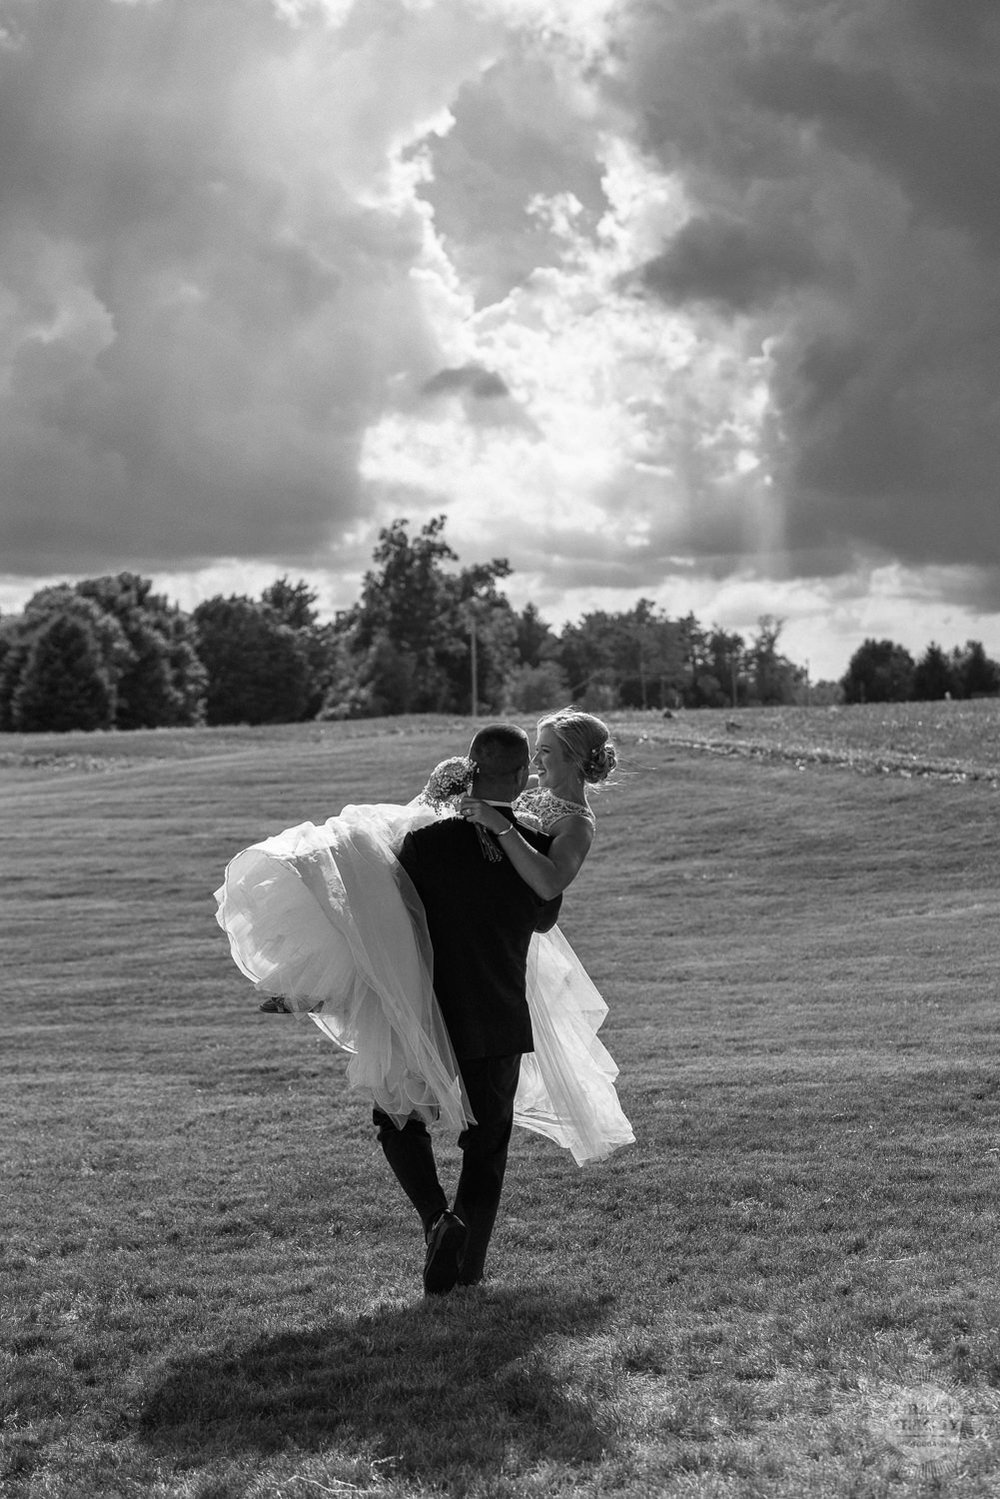 Kendalville wedding photographer Grant Beachy -32.jpg